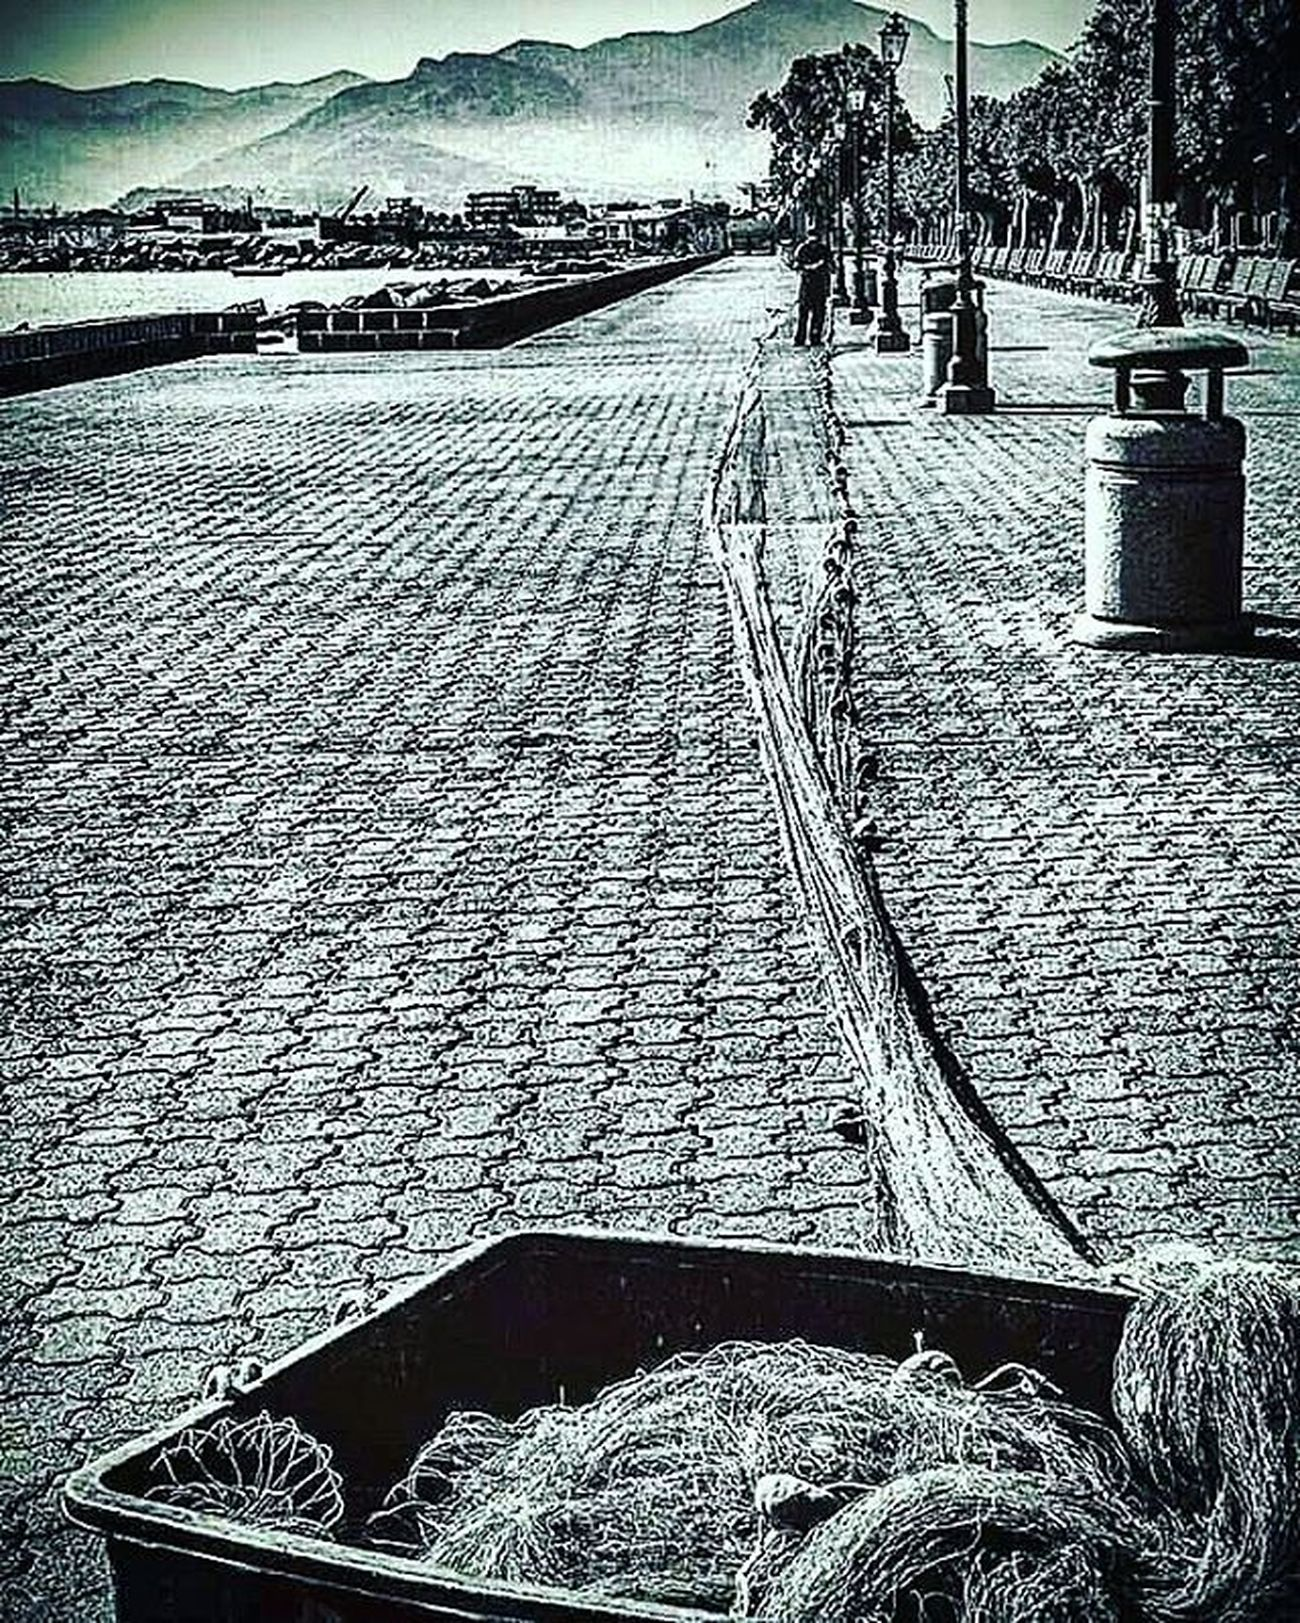 Walk. Sicily Milazzo Marinagaribaldi Nets Blackandwhite Fish Perspective Photooftheday Day Sicily City Minimal L4l Follow4follow Architecture Rain Rcnocrop All_shots Amazing Art Awesome Baby Beach Clouds Colorful